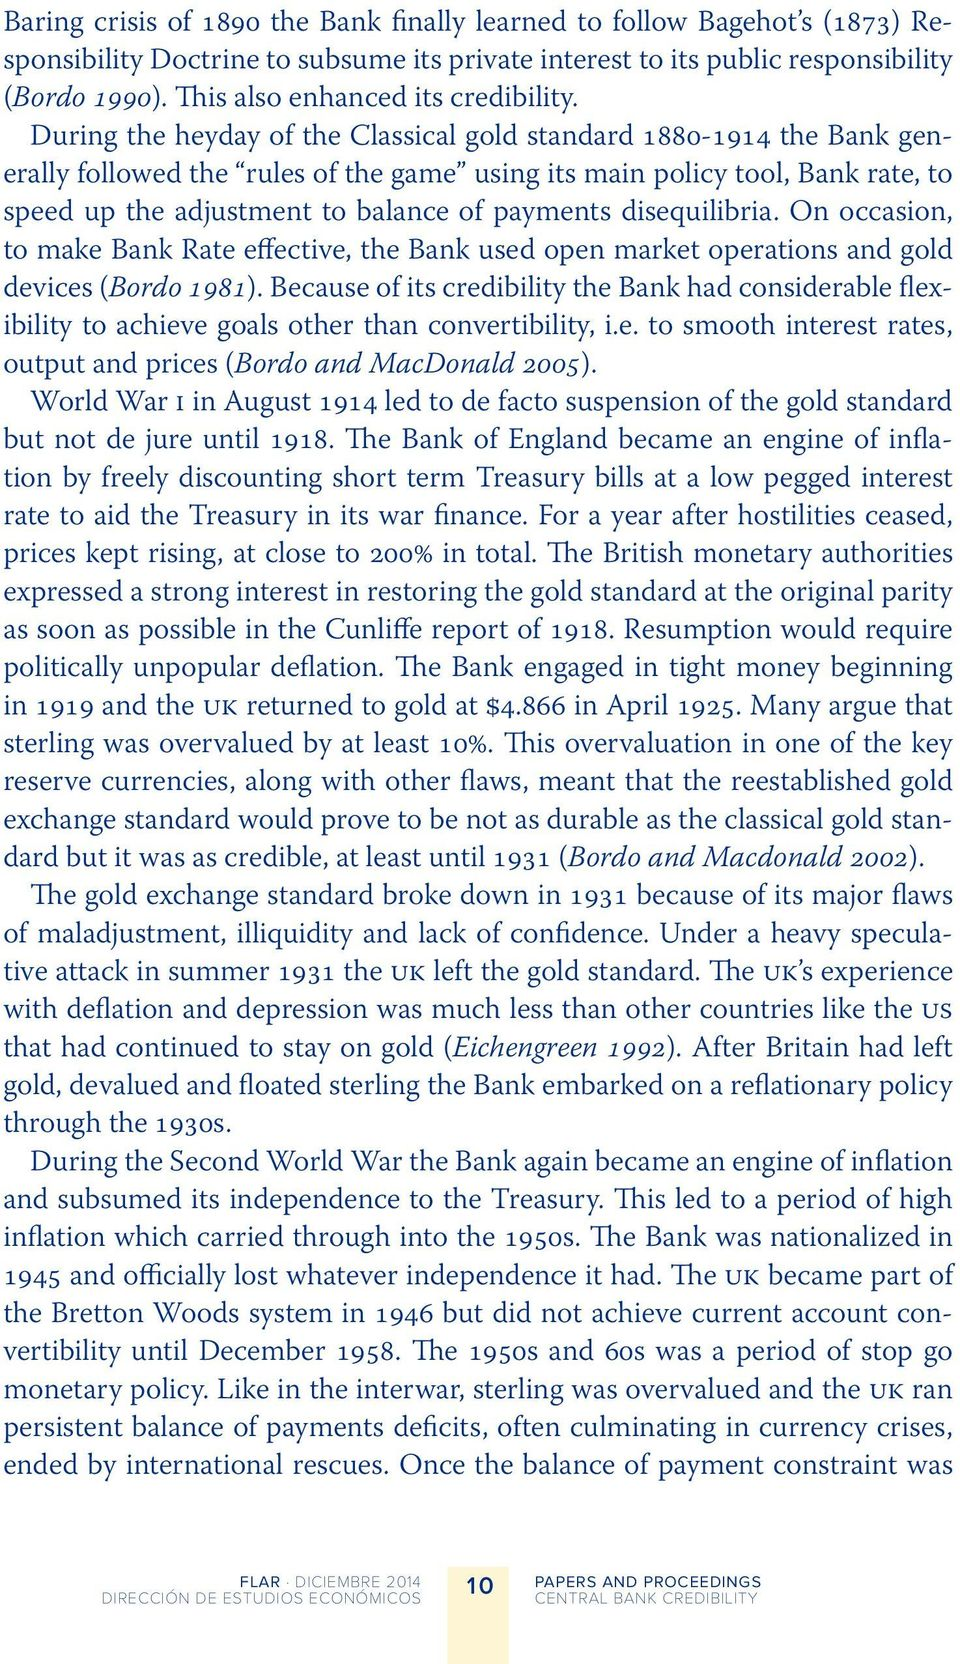 During the heyday of the Classical gold standard 188-1914 the Bank generally followed the rules of the game using its main policy tool, Bank rate, to speed up the adjustment to balance of payments